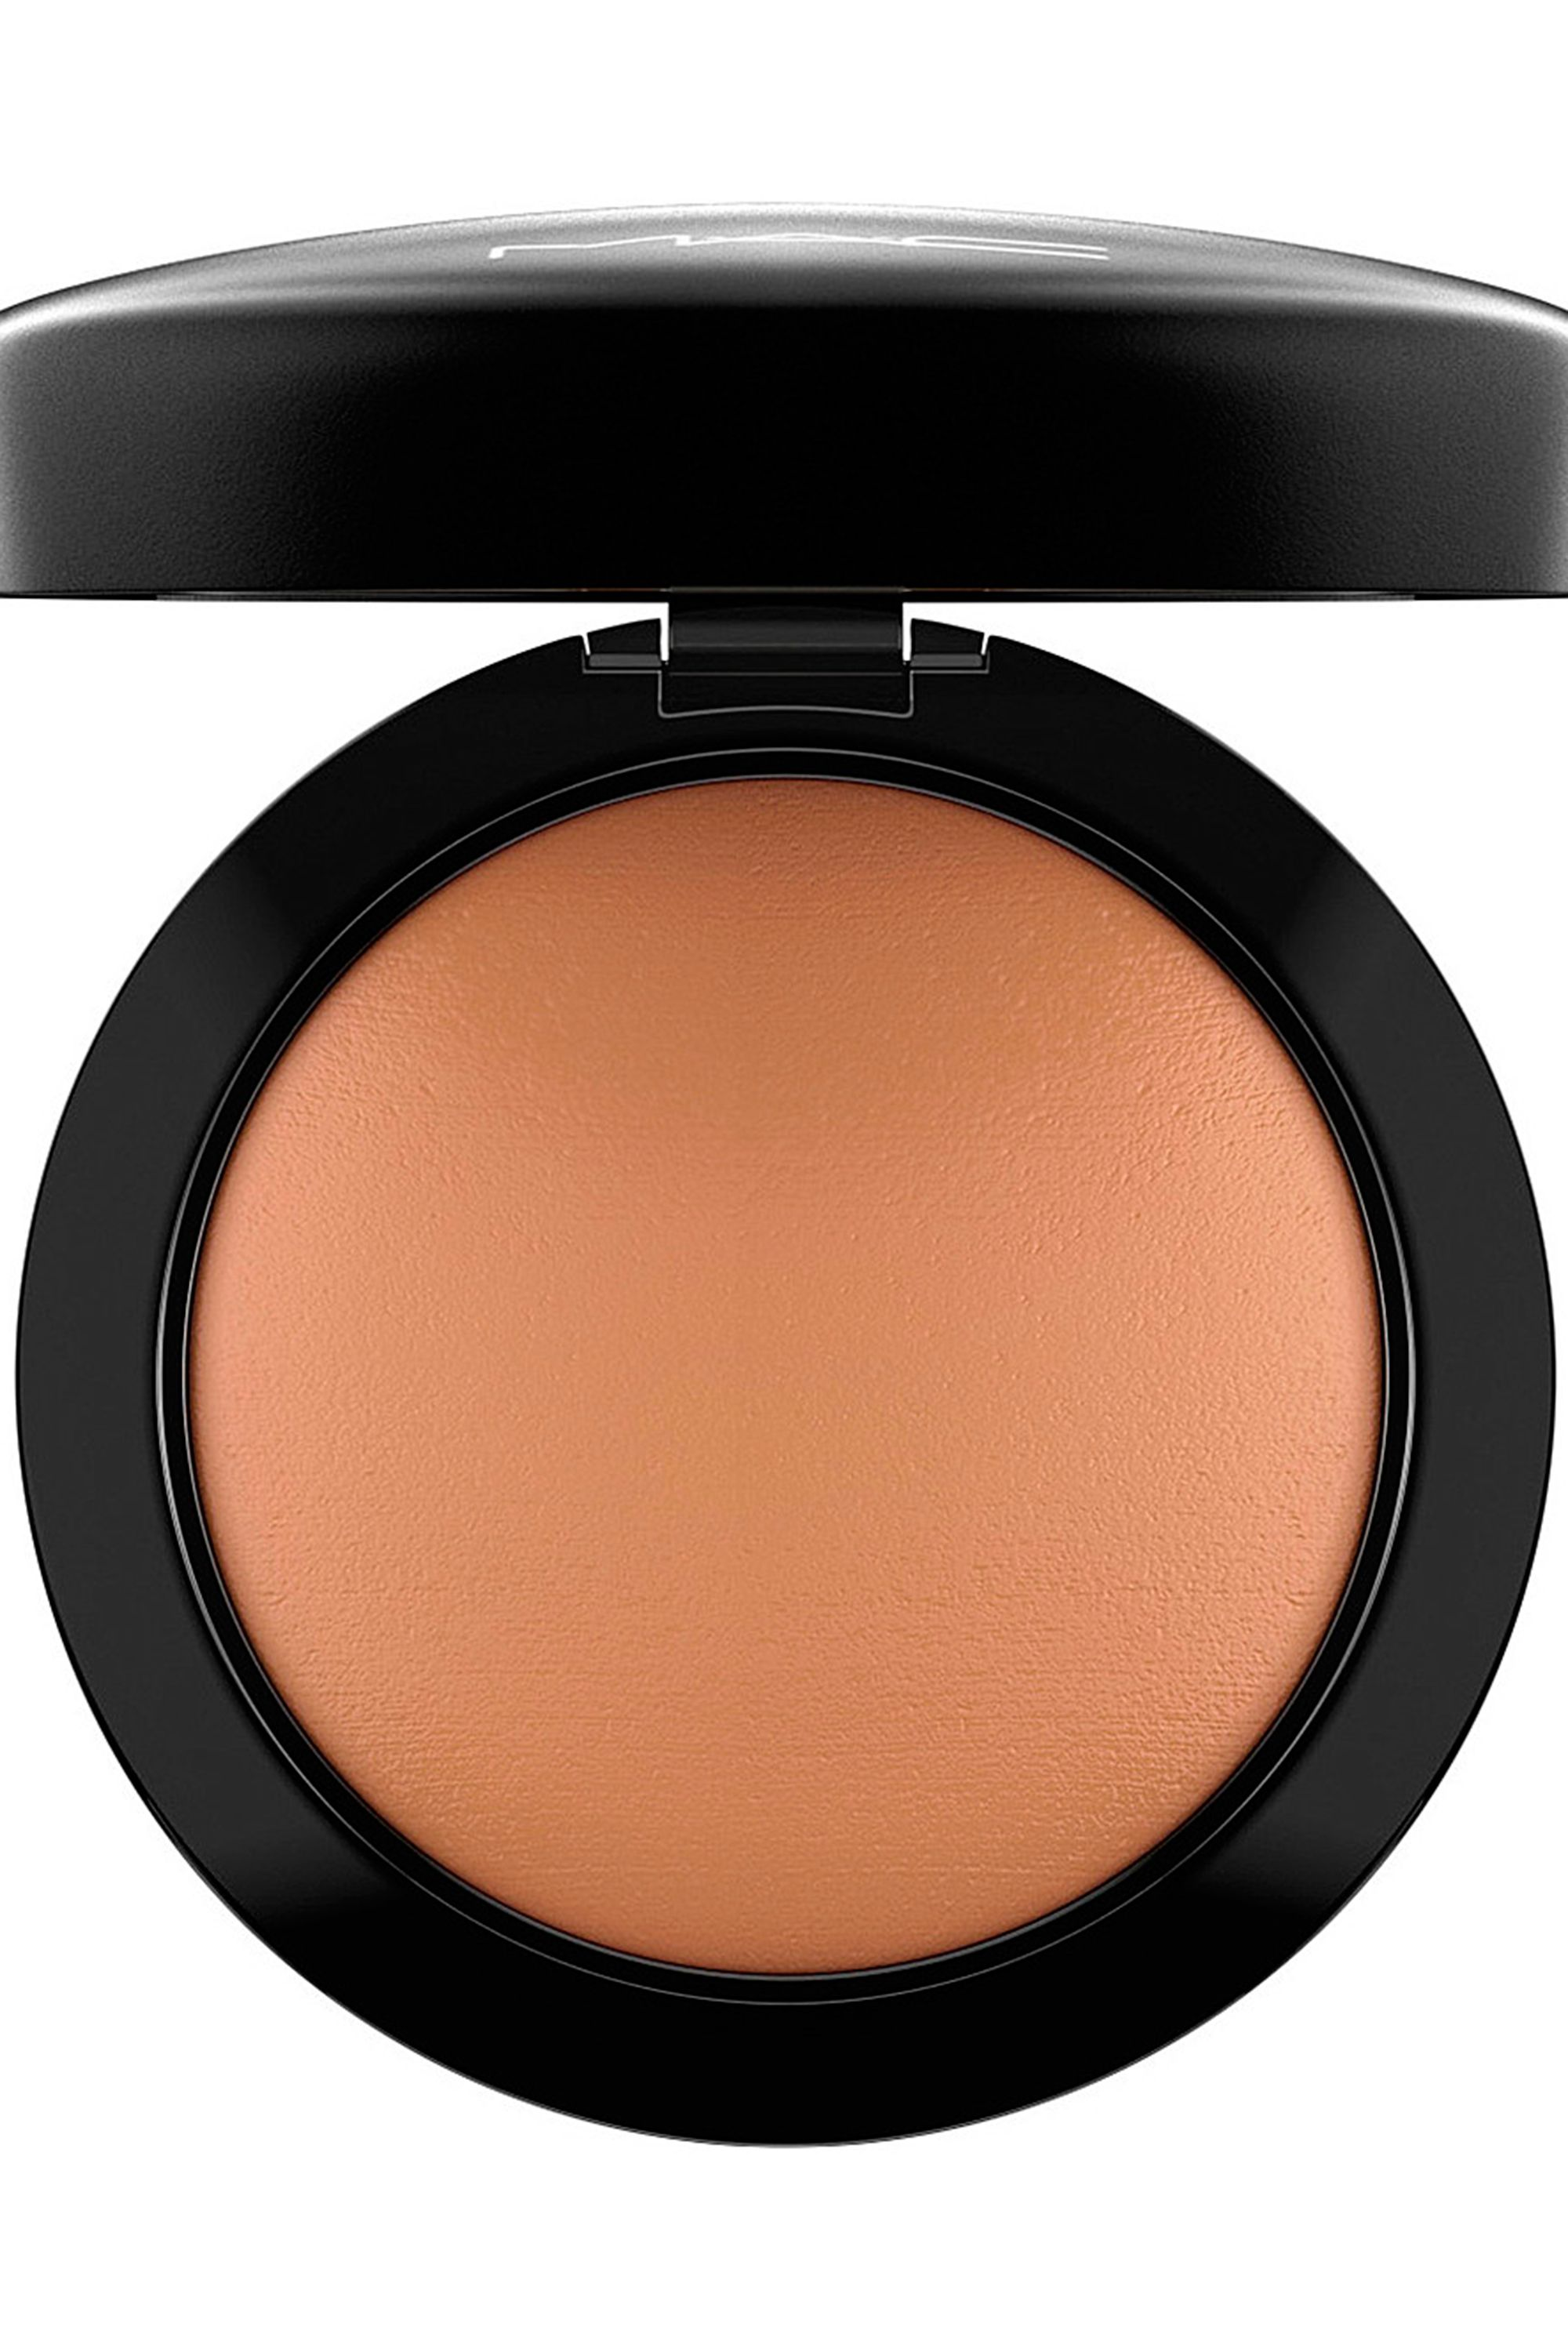 Best compact powder